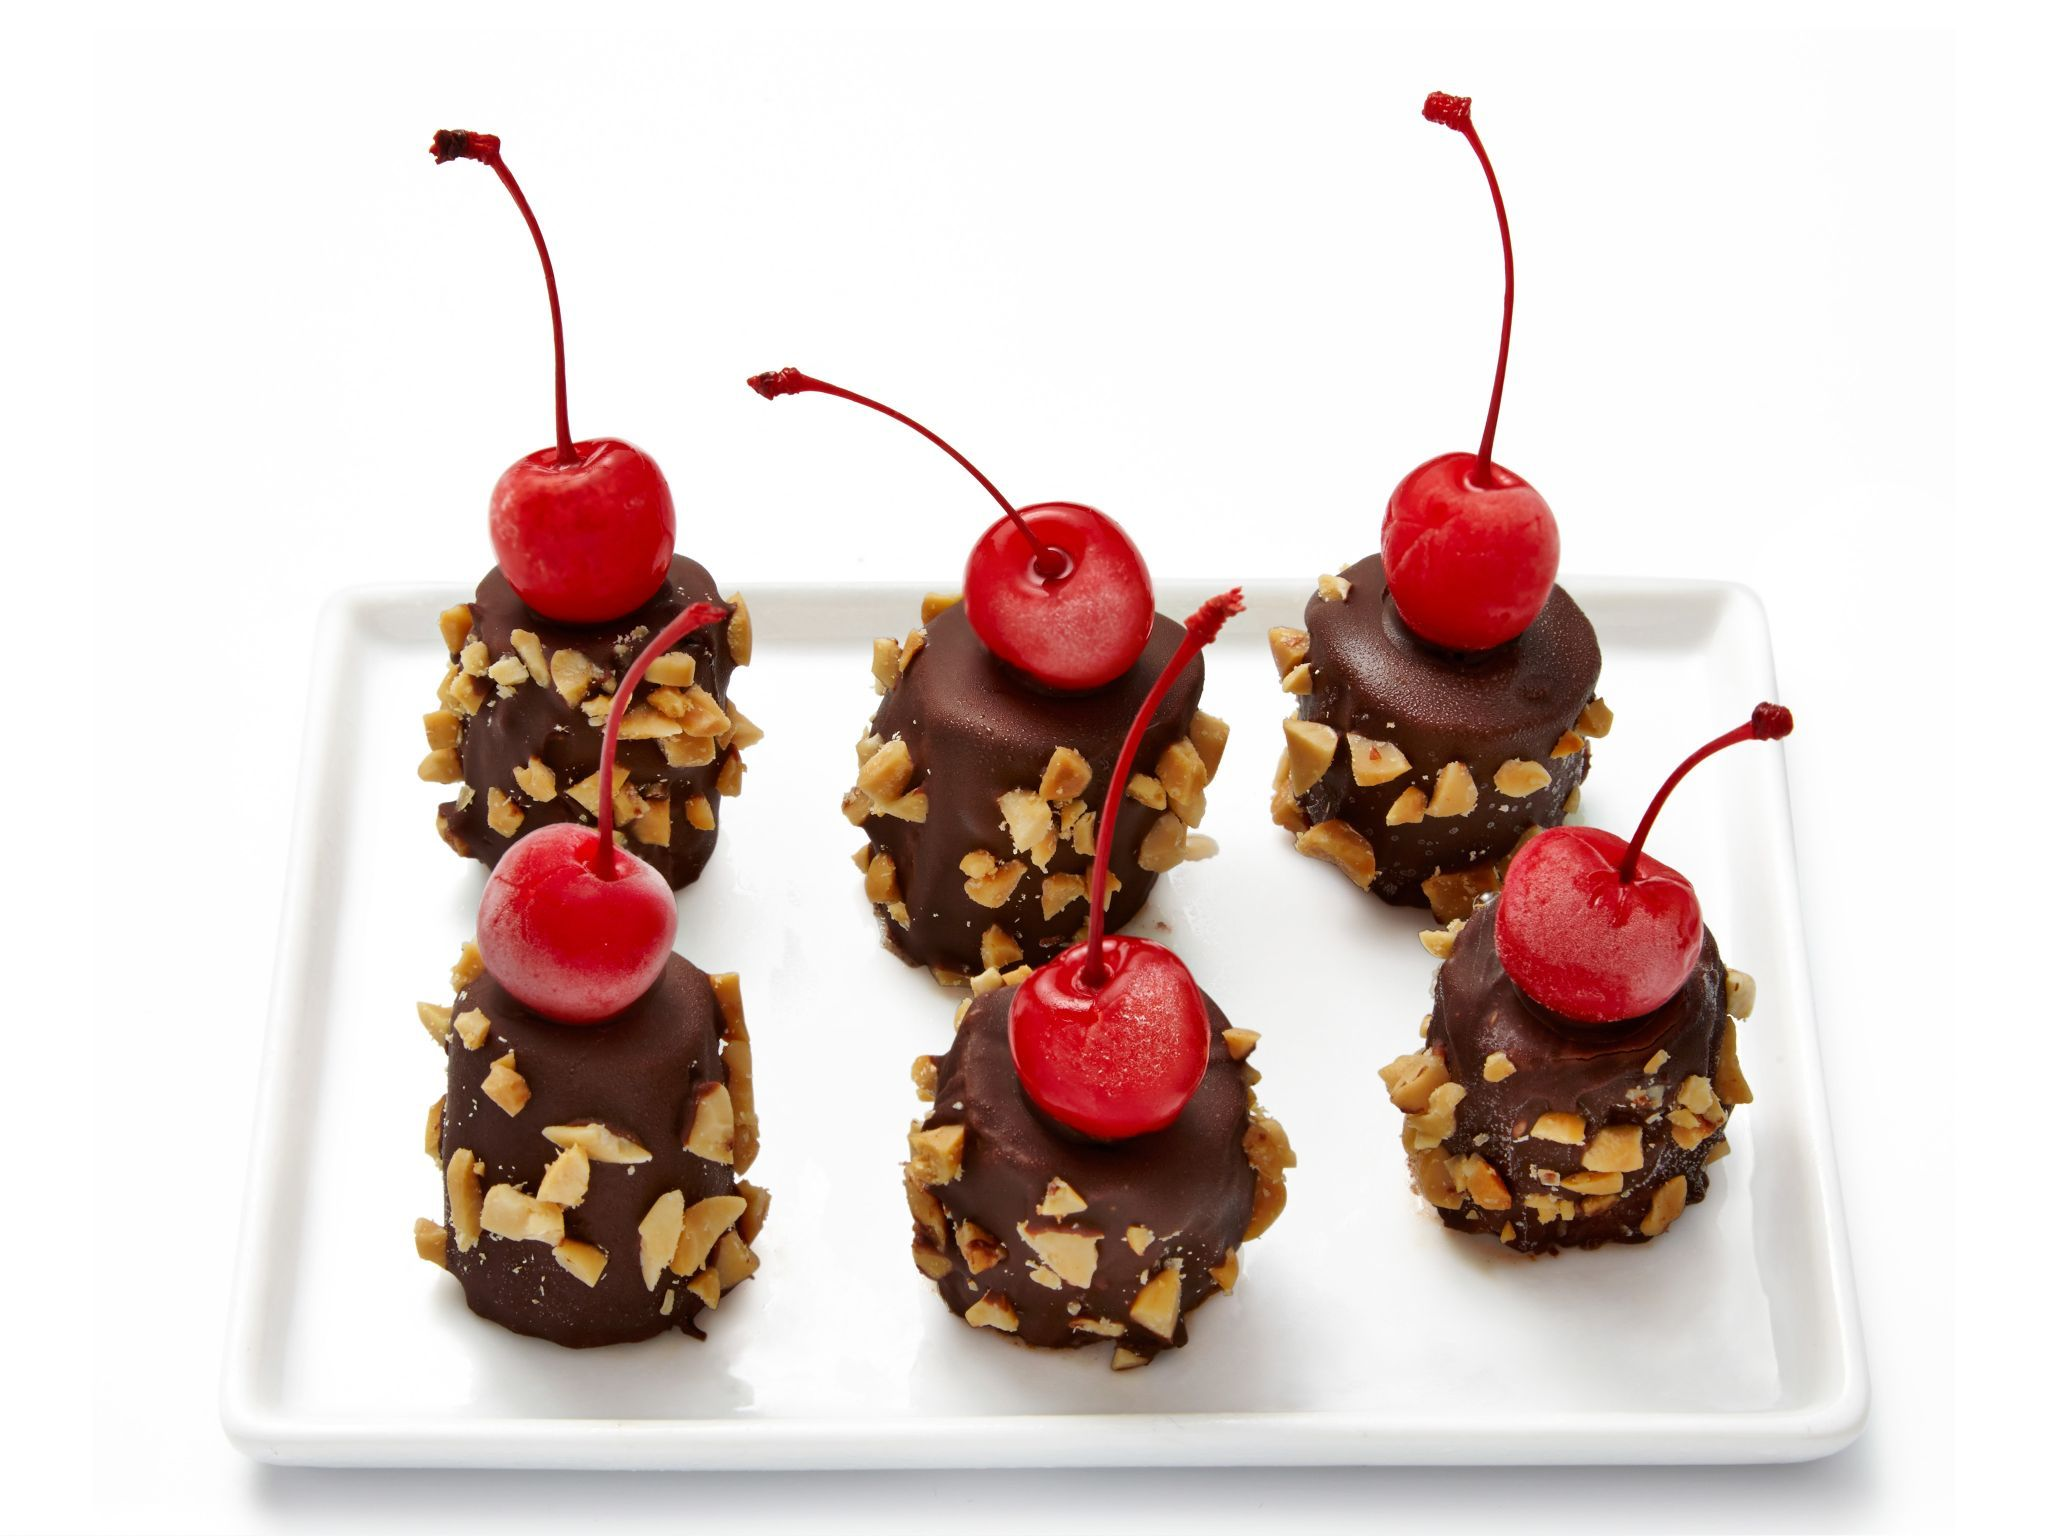 Banana split bites recipe from food network kitchen via food network banana split bites recipe from food network kitchen via food network forumfinder Image collections